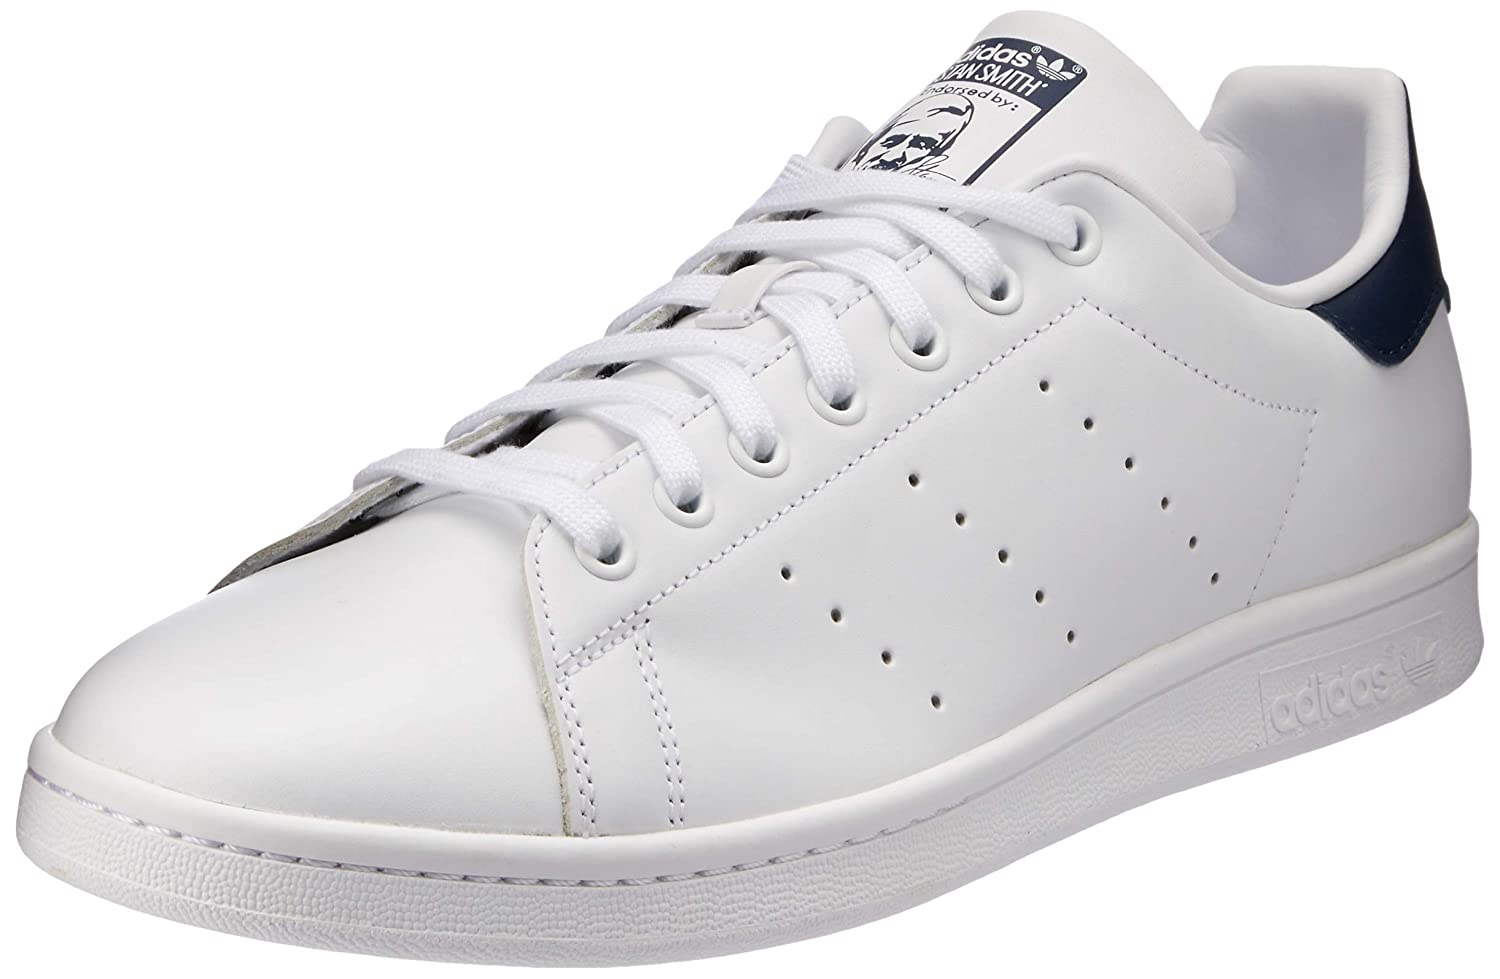 TALLA 38 EU. adidas Stan Smith, Zapatillas de Deporte Unisex Adulto